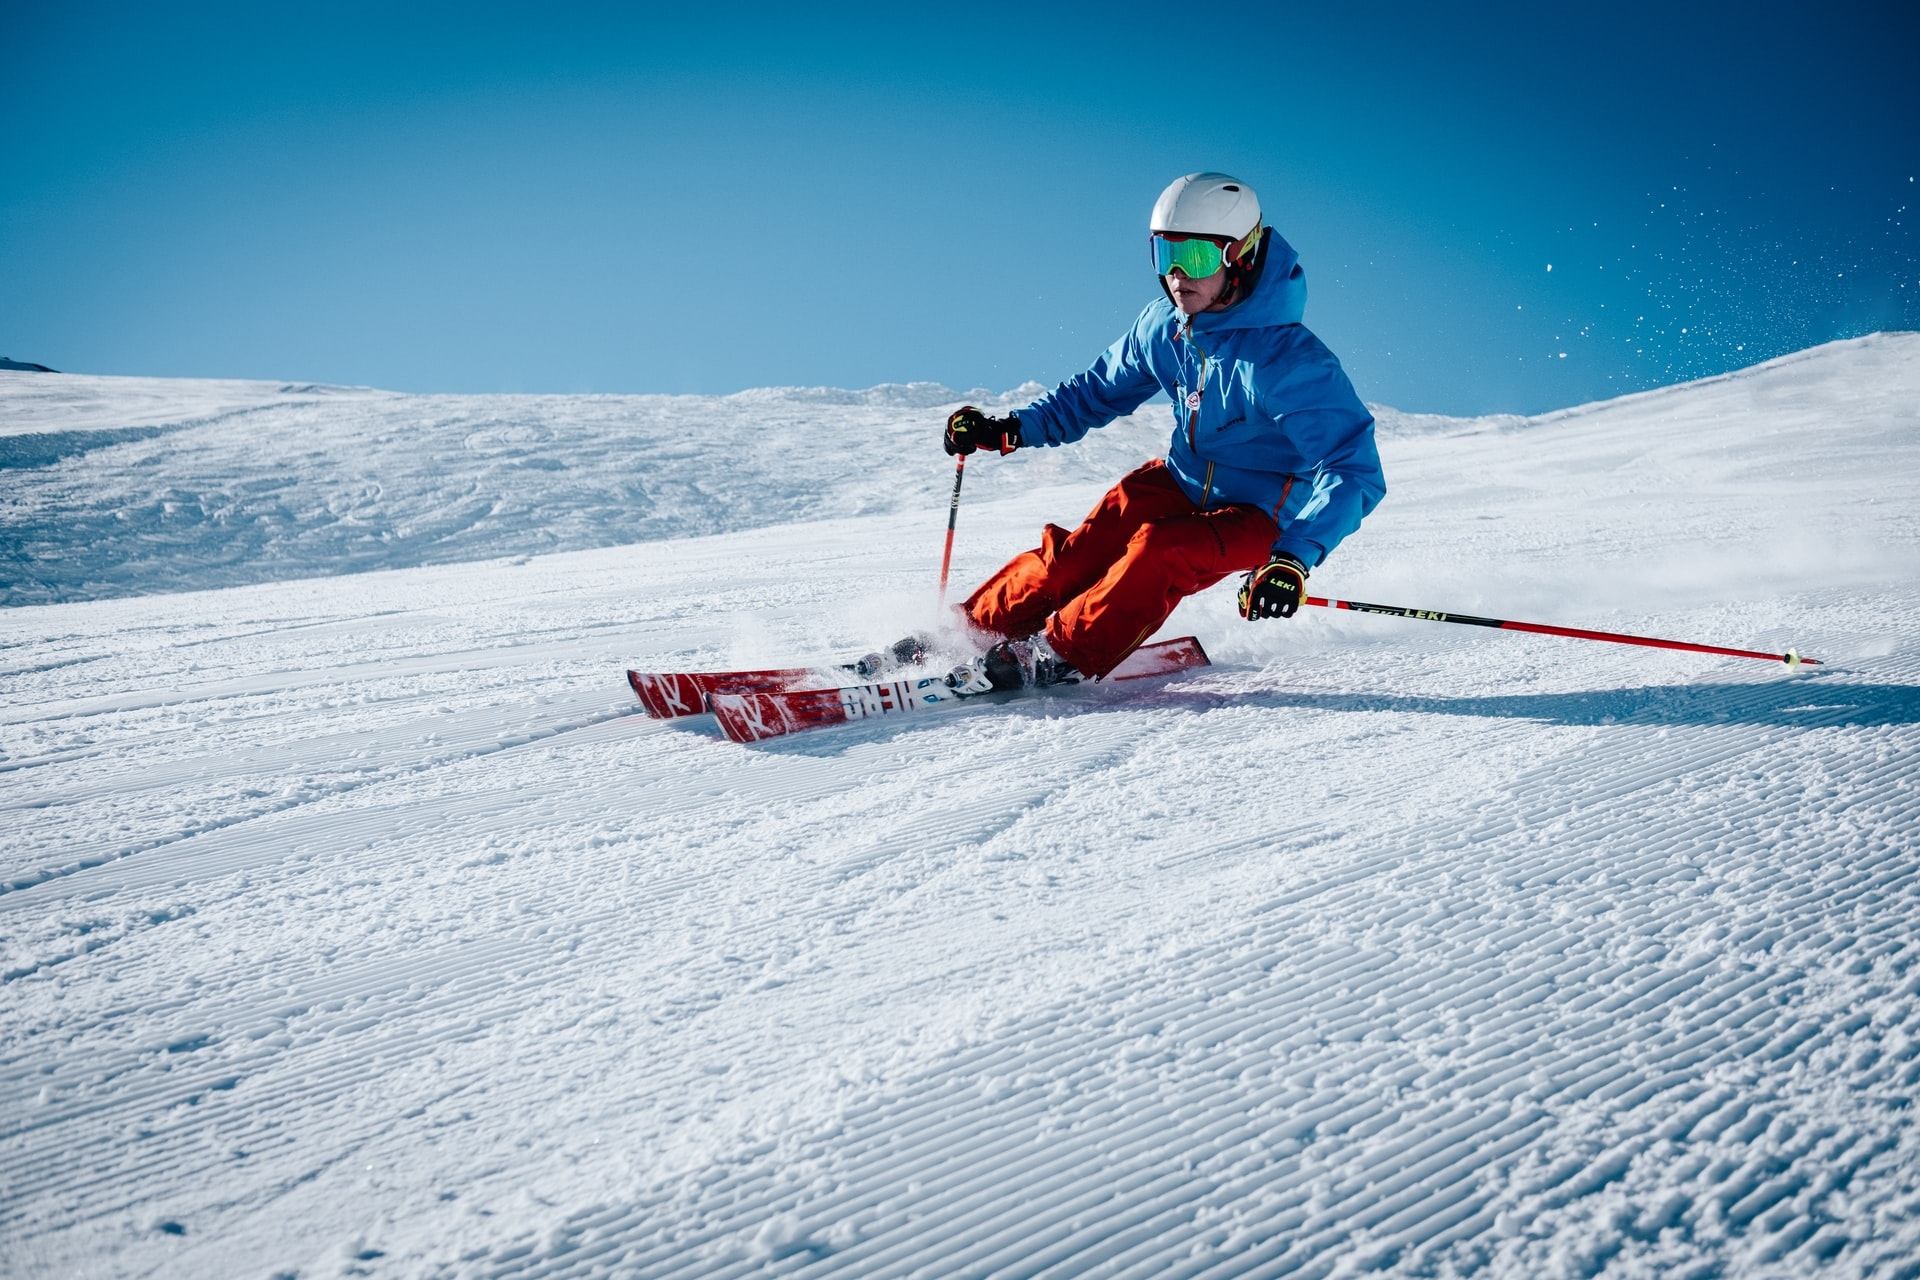 How To Remain Safe While Skiing